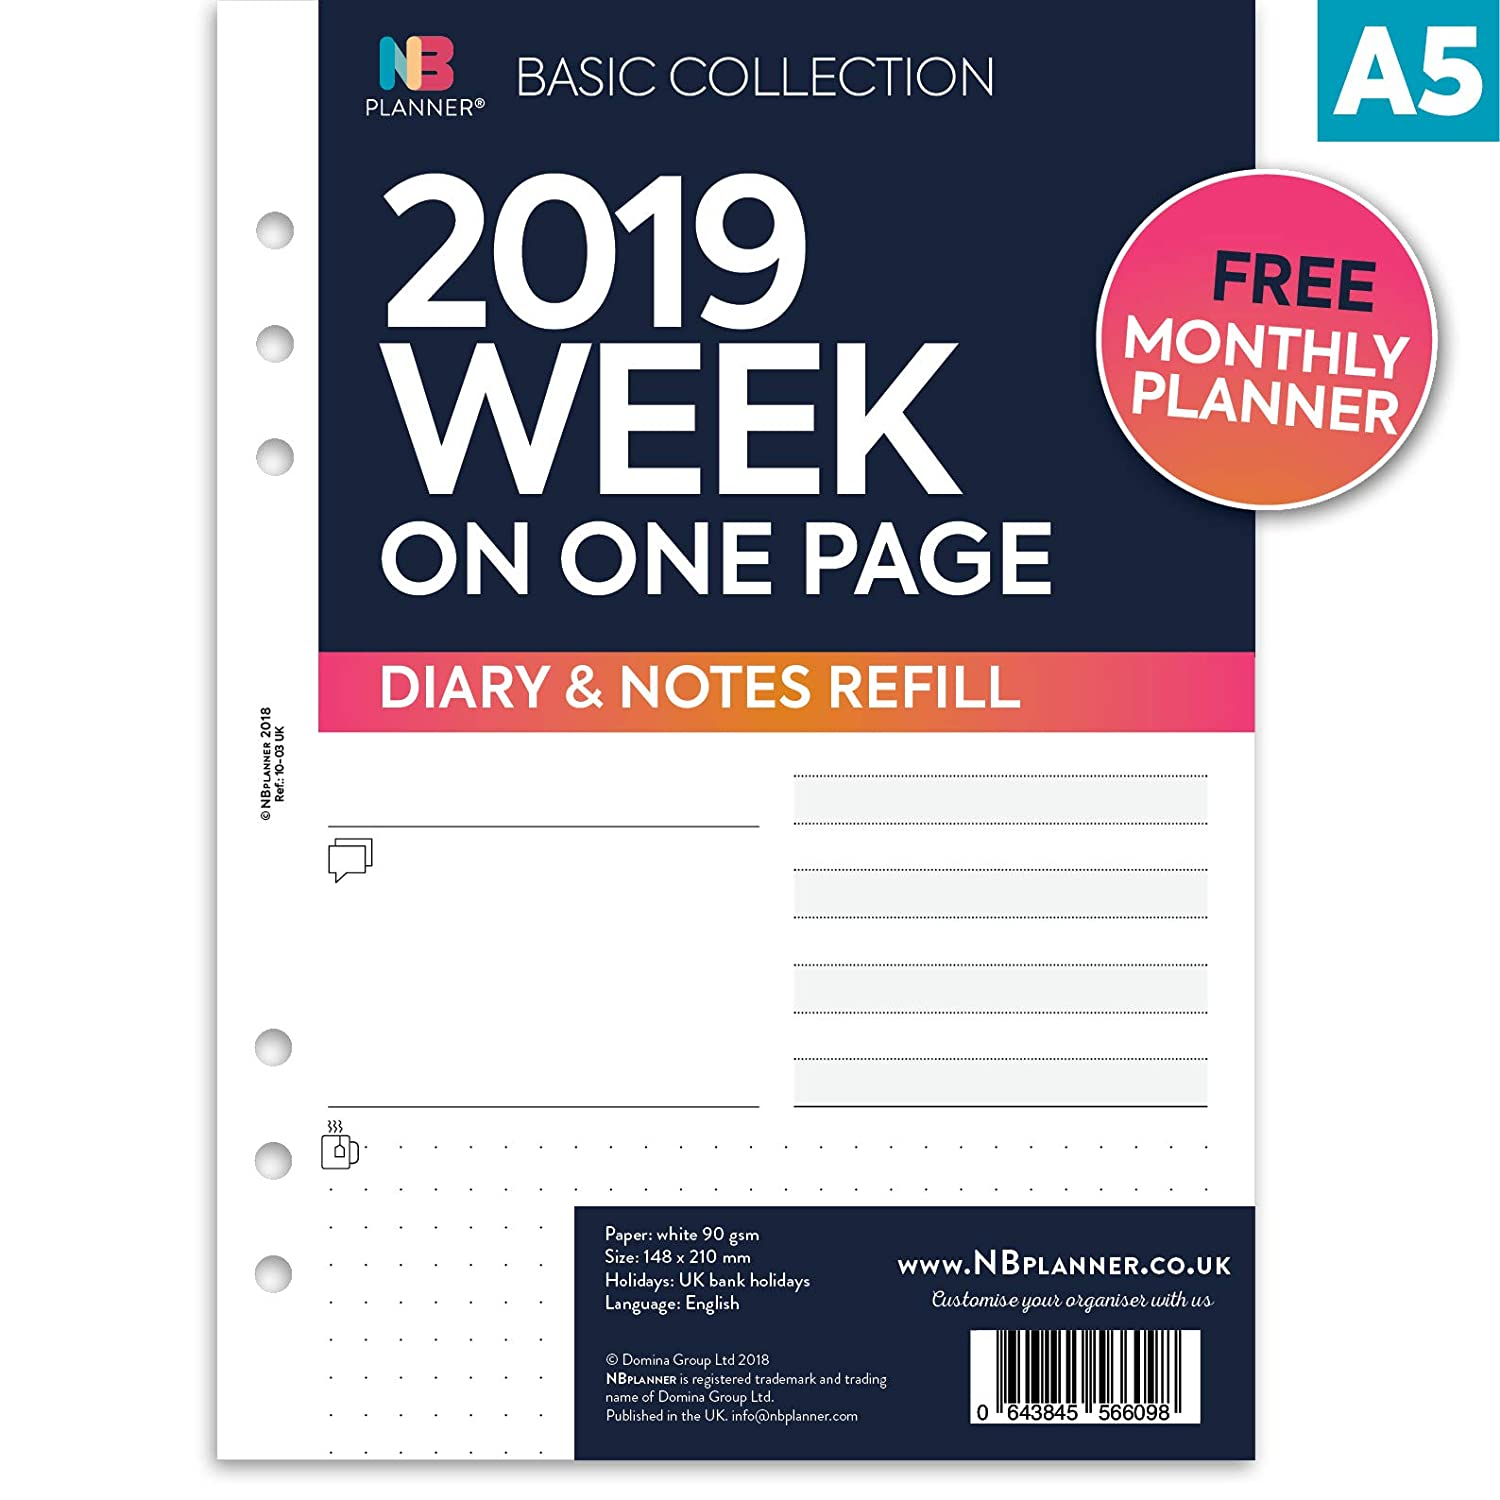 NBplanner® 2019 Week on one Page Diary with Notes Planner Basic Collection English Organiser Refill A5 Size Domina Group Ltd